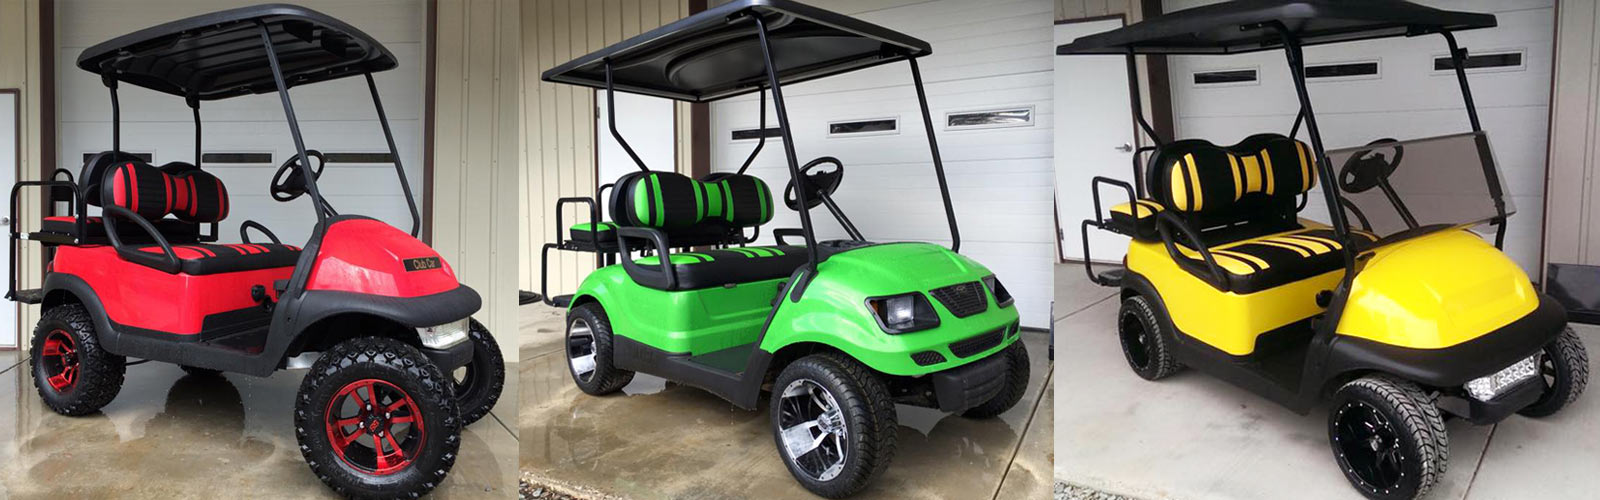 Brad's Golf Cars has a vast New golf cart inventory!